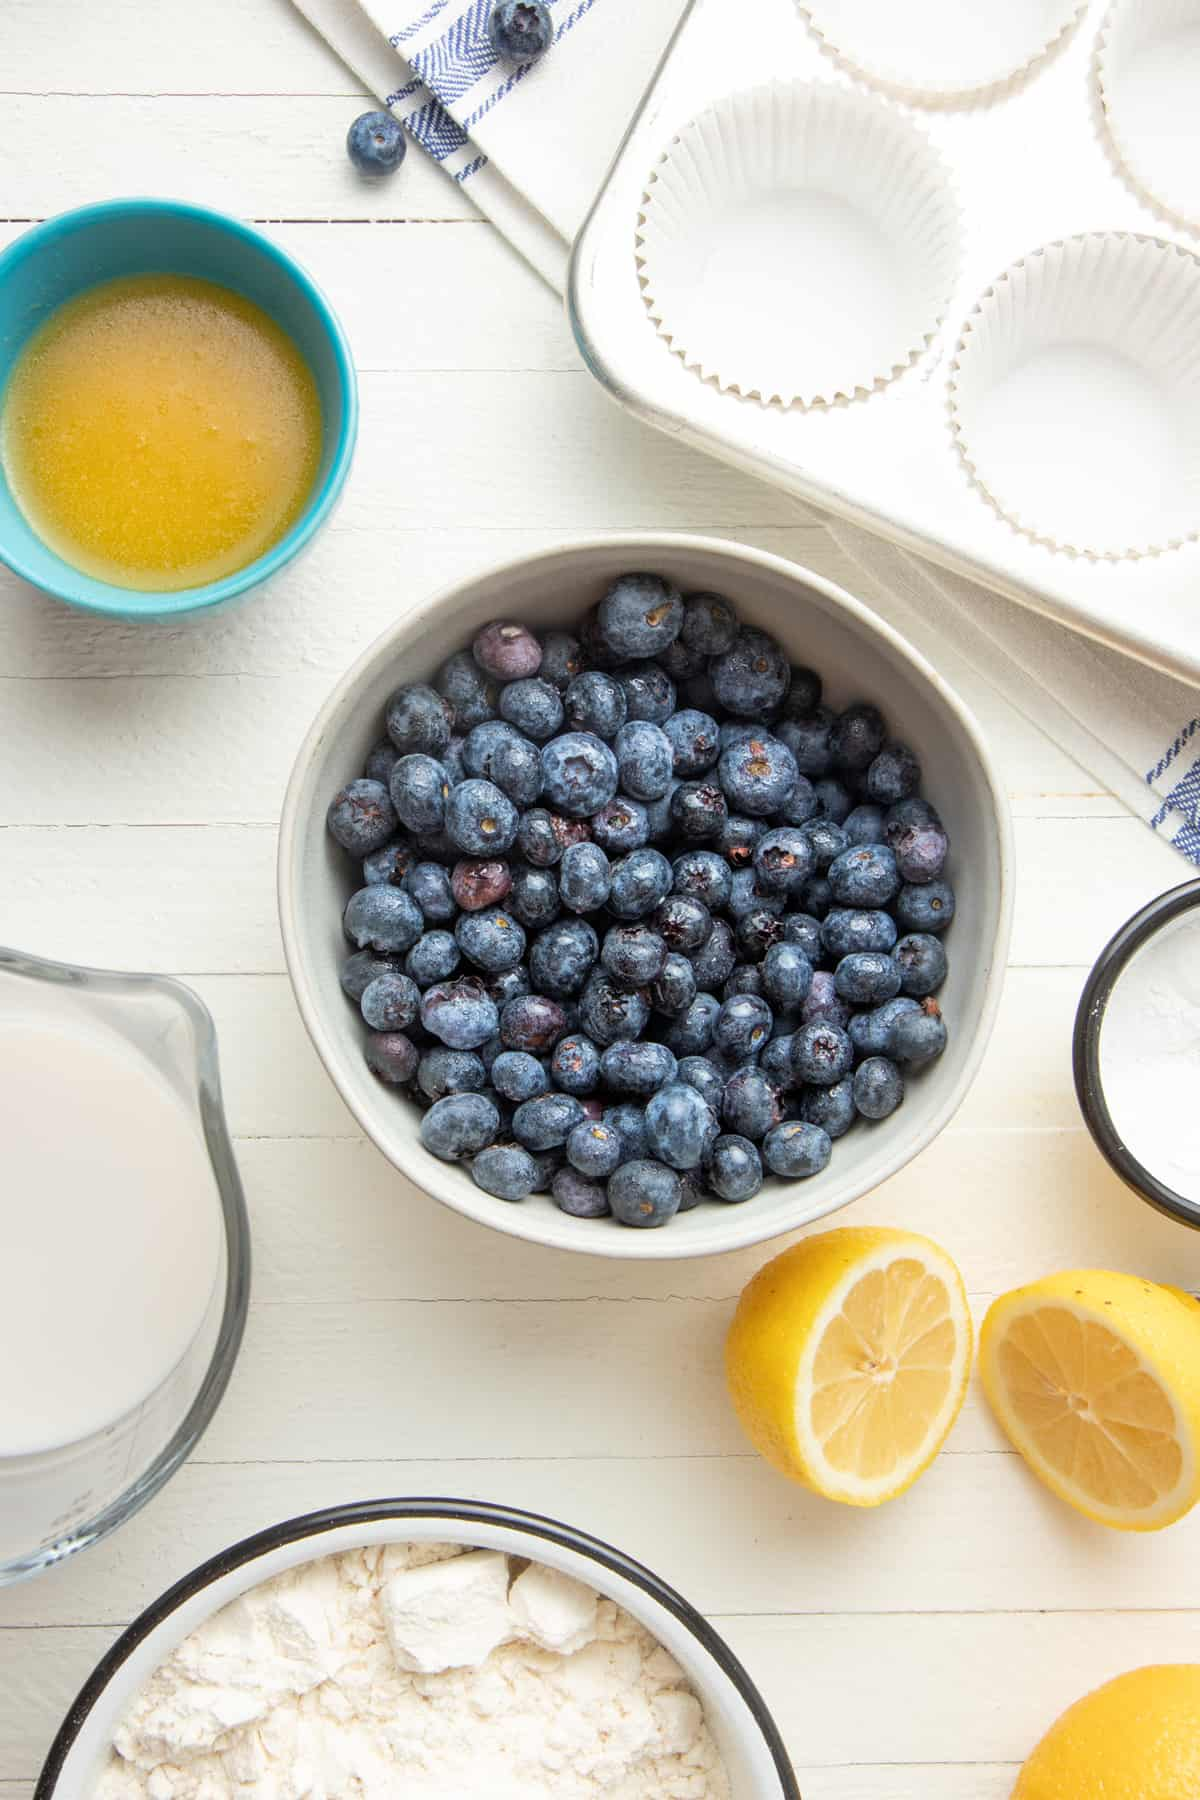 Blueberries sit in a bowl. A muffin pan, lemon slices, and other ingredients sit to the side.